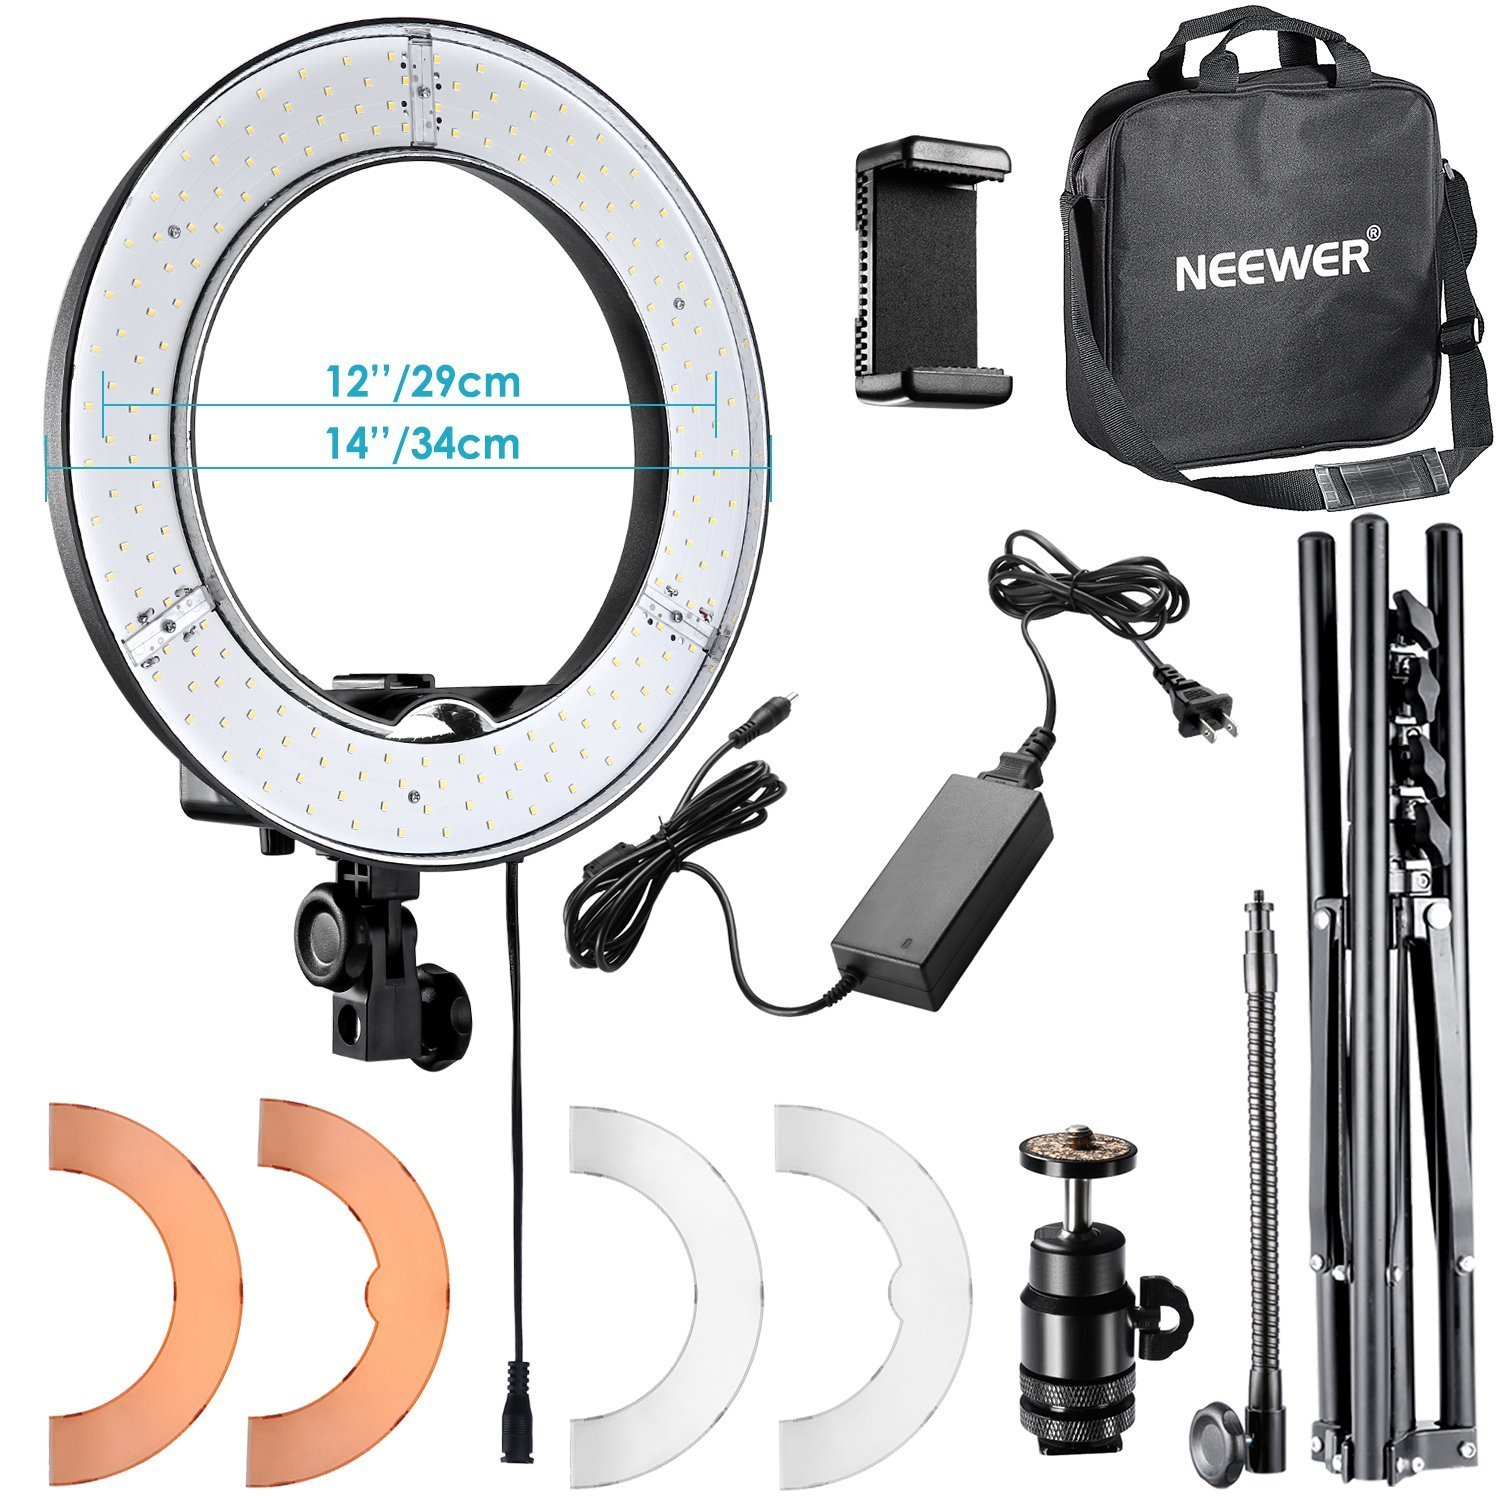 Neewer RL-12 LED Ring Light 14'' outer/12 on Center with Light Stand, Soft Tube, Filter, Bluetooth Receiver for Makeup, Camera/Phone Video Shooting